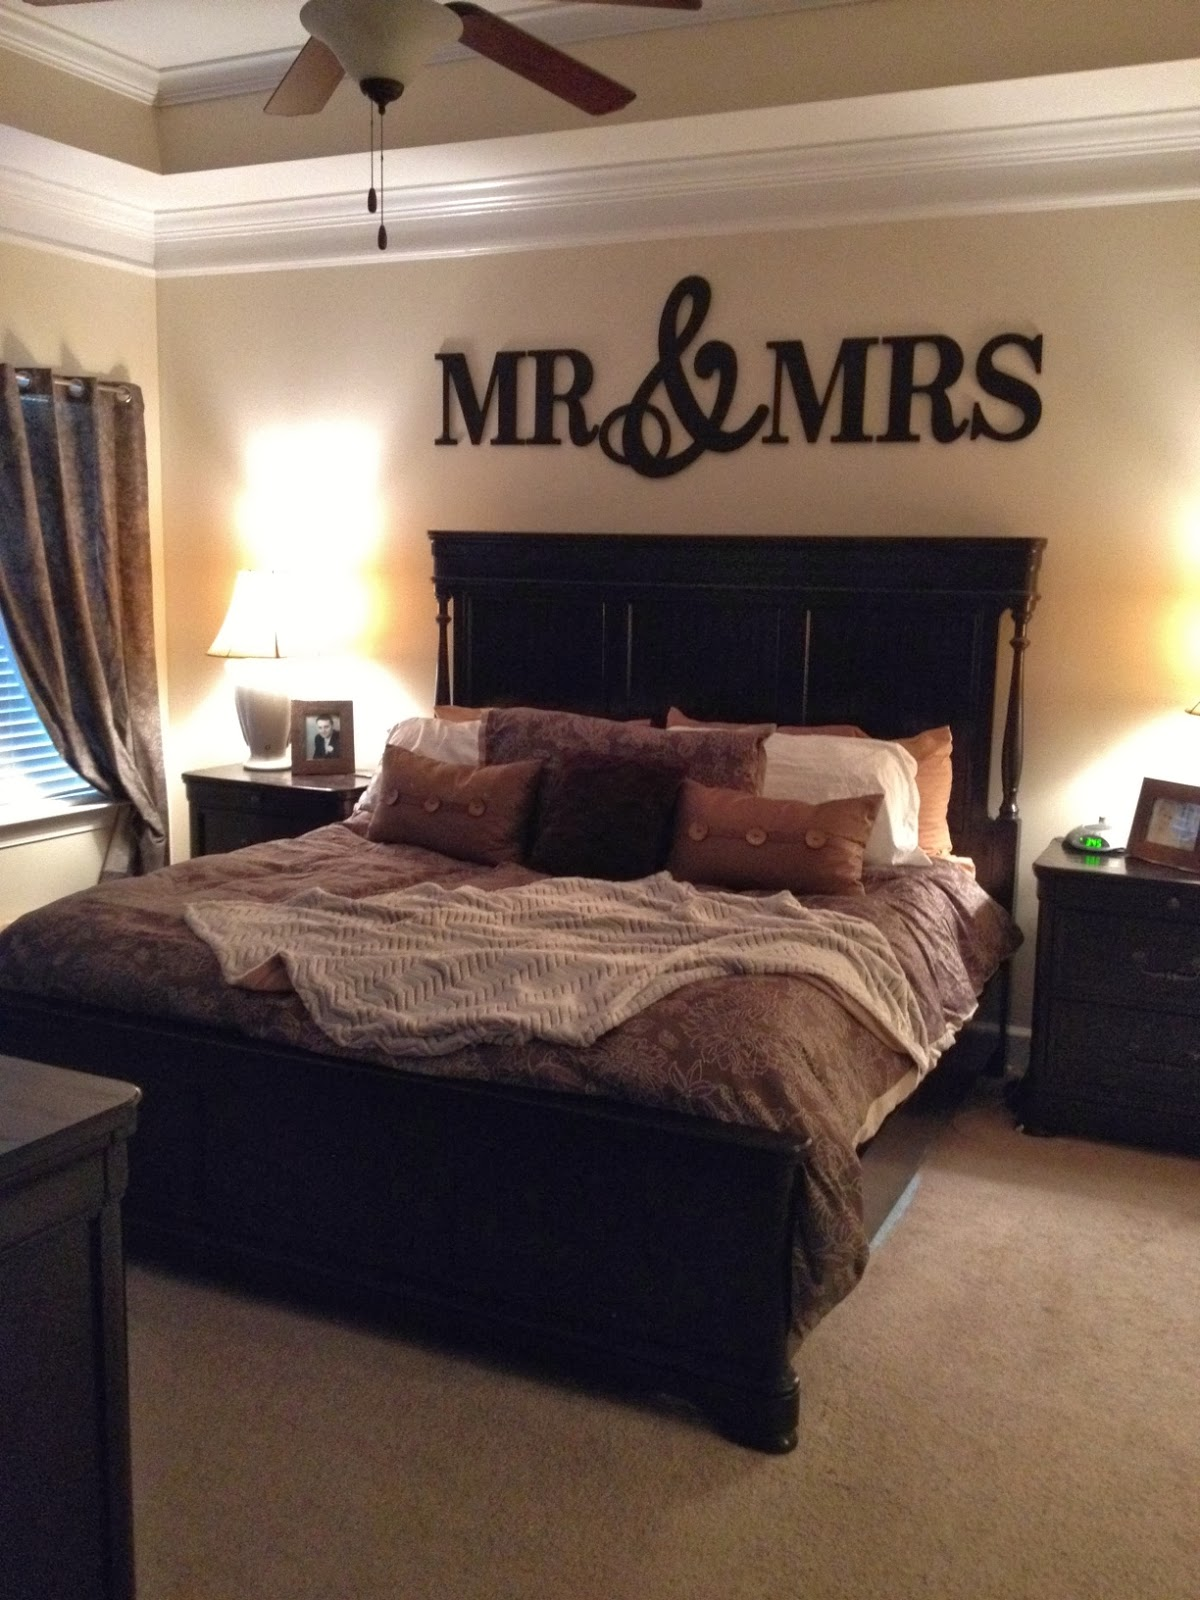 Wall Decor Ideas Master Bedroom : Simply the simmons mr mrs